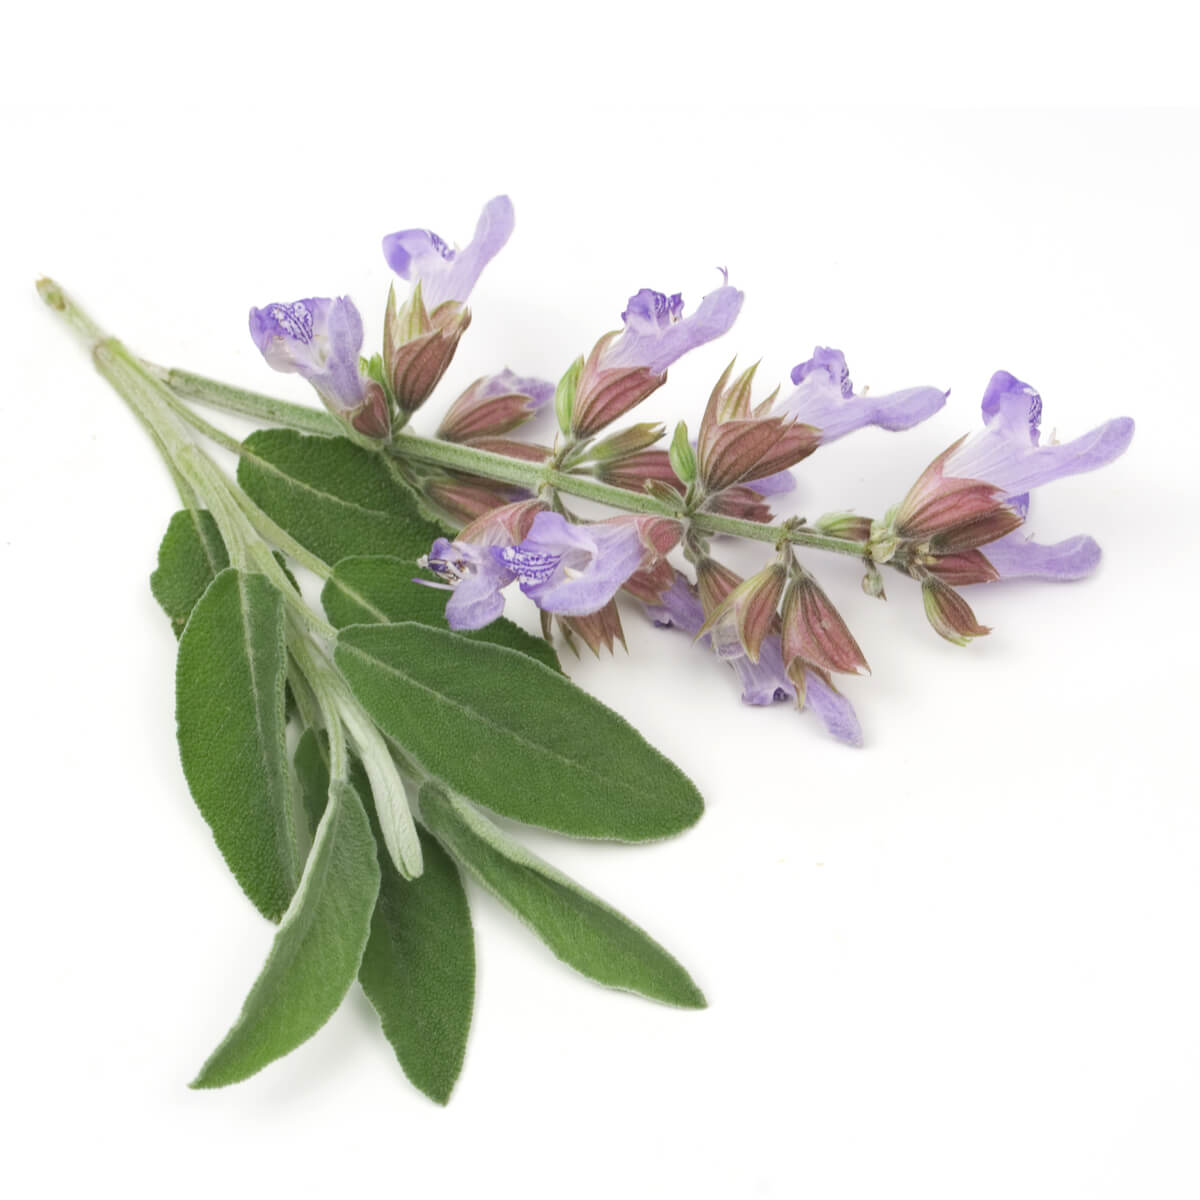 Sage leaves and flowers